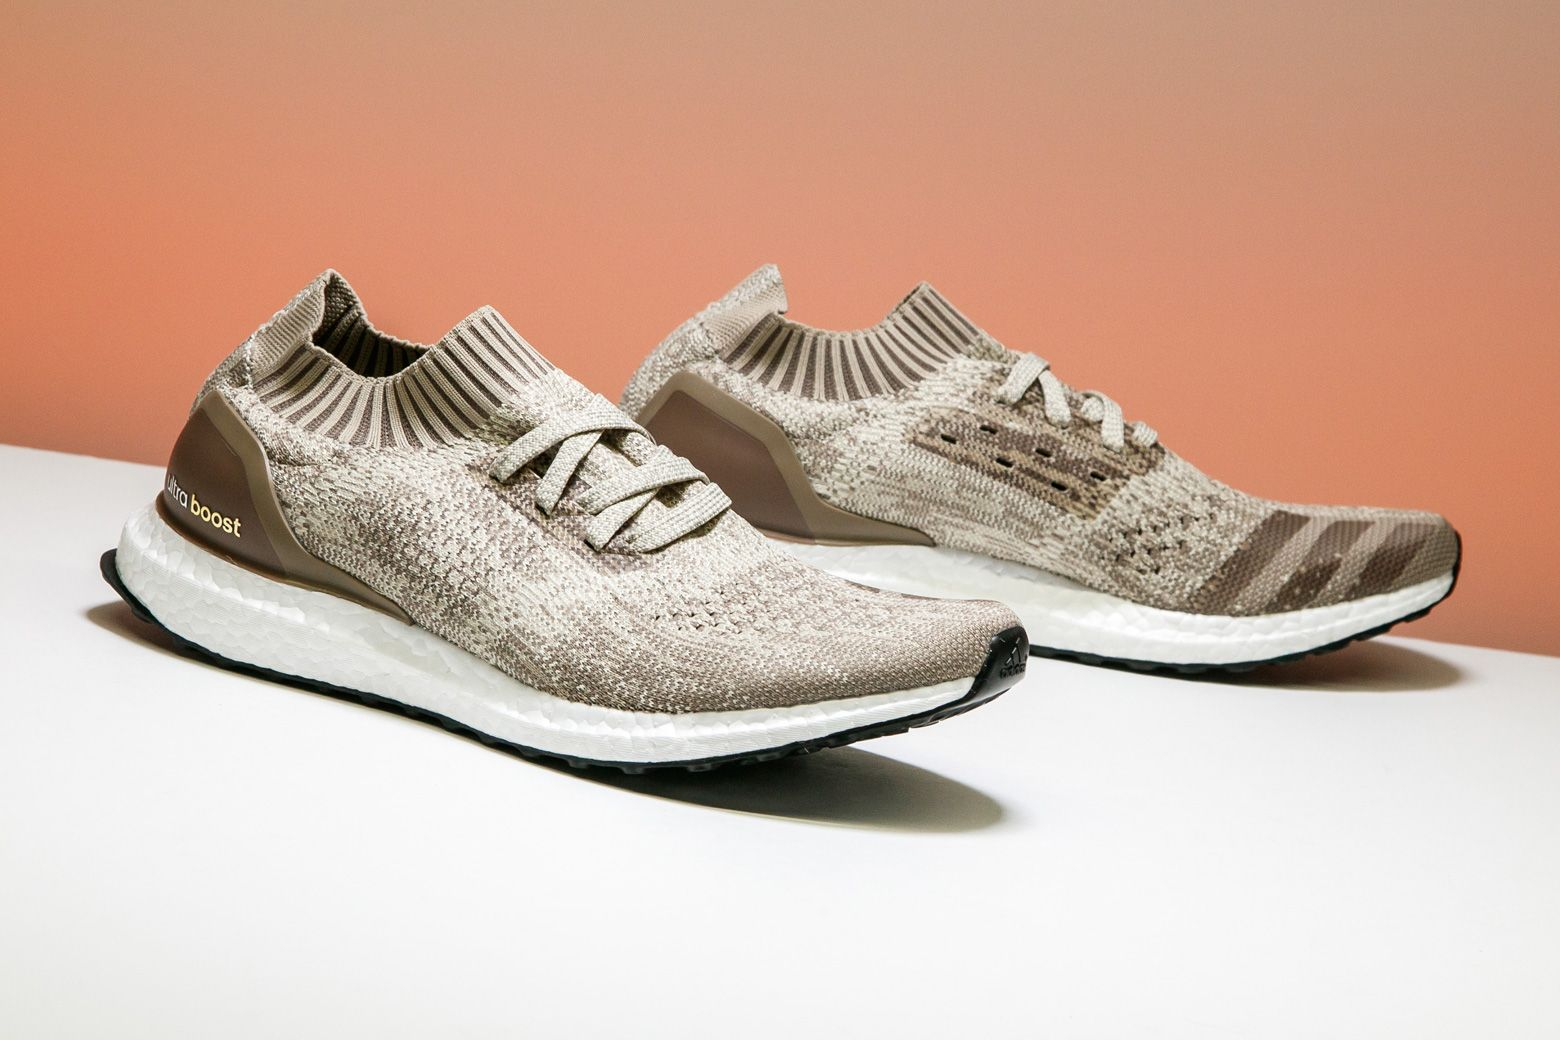 adidas goes the simple and clean route with this Ultra Boost Uncaged in